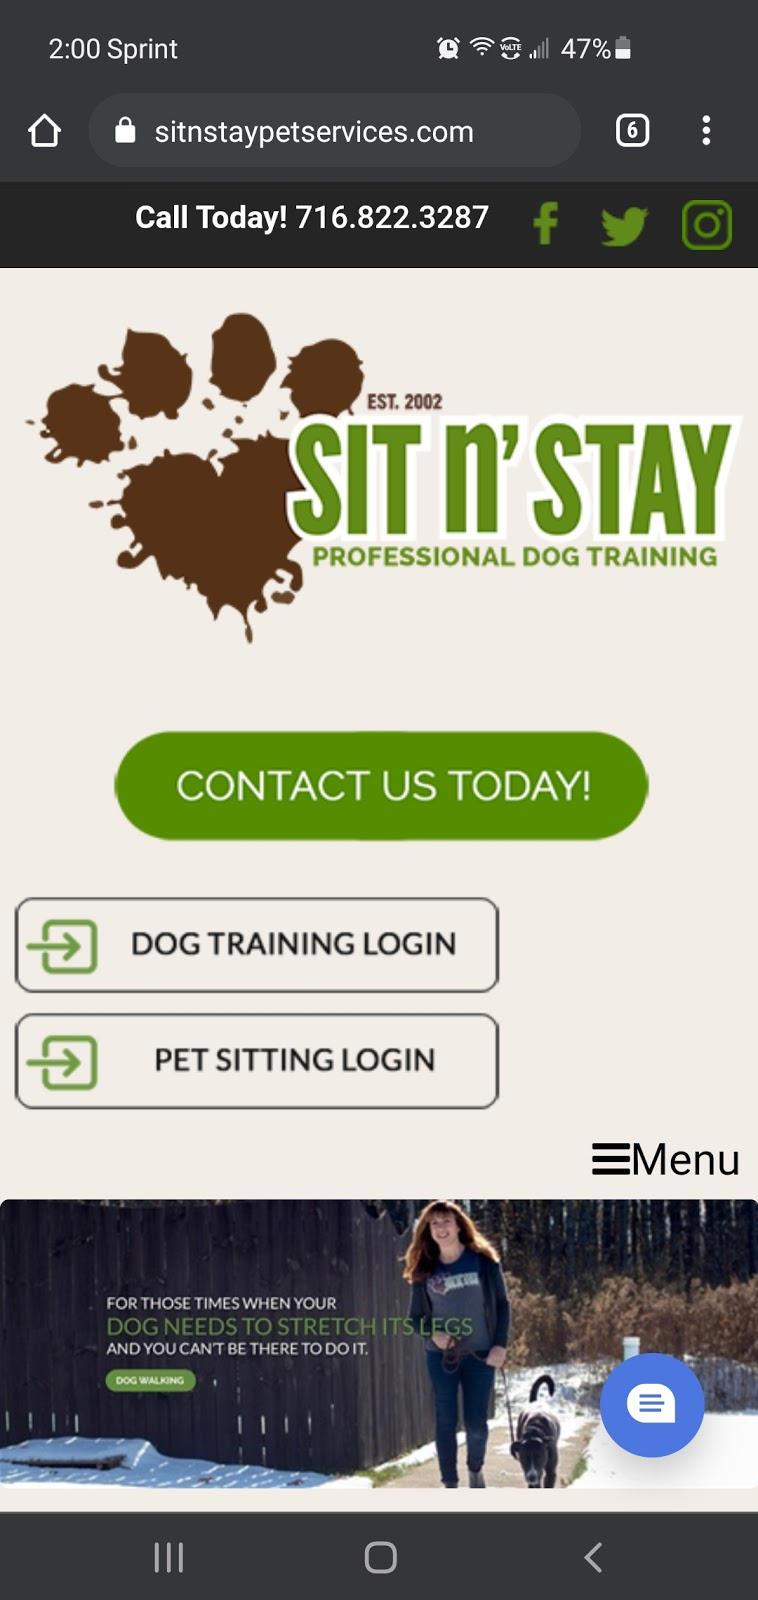 Sit 'n Stay Pet Services - cover photo